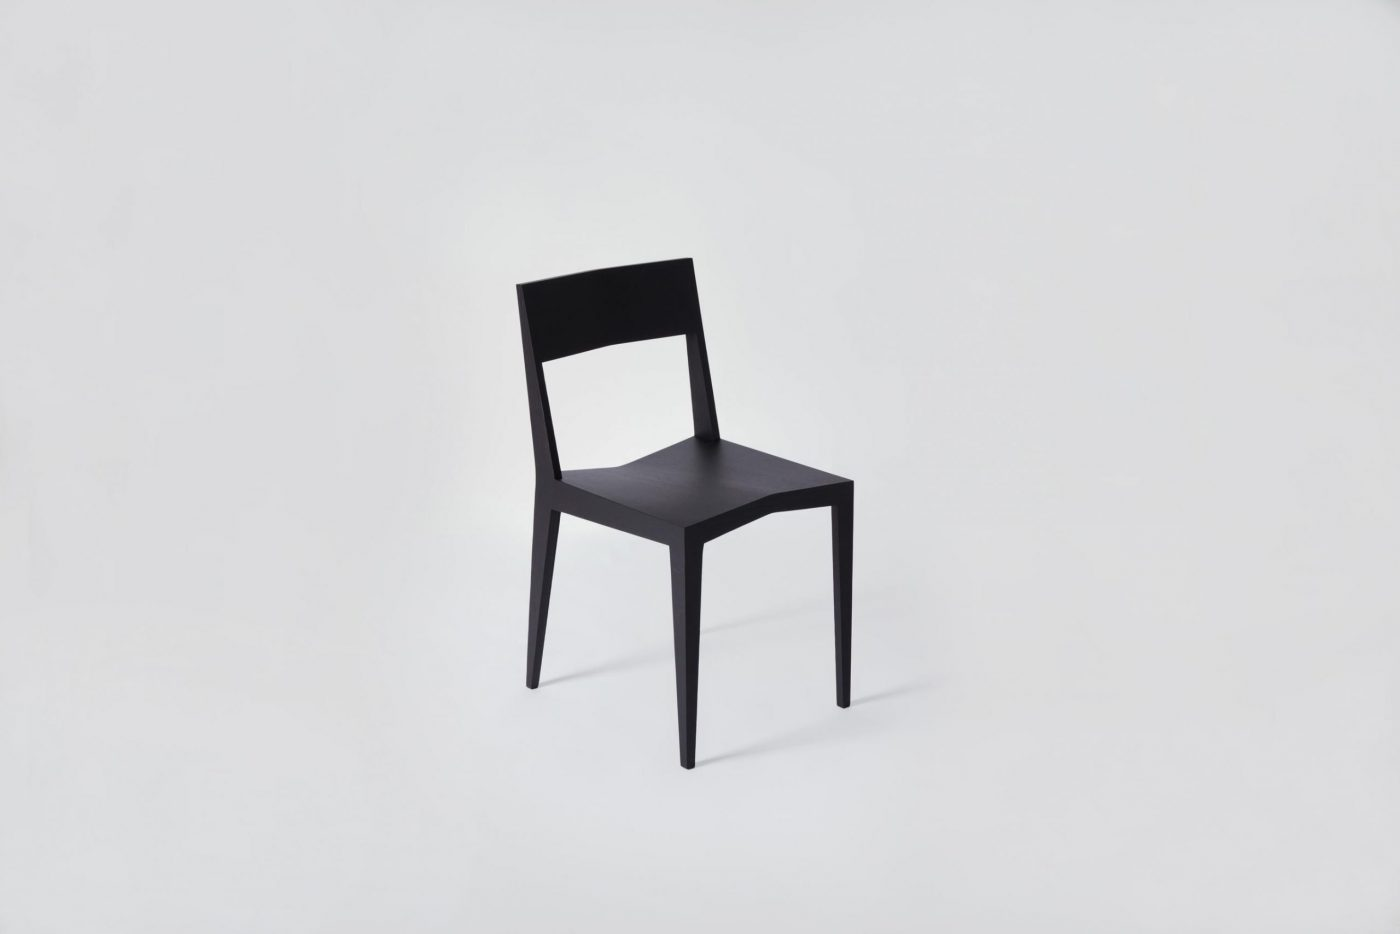 15 MYKILOS WOODEN WOOD DESIGN DESIGNER STUHL HOLZ CHAIR BLACK SCHWARZ NATURAL OILD SCHWARZ scaled